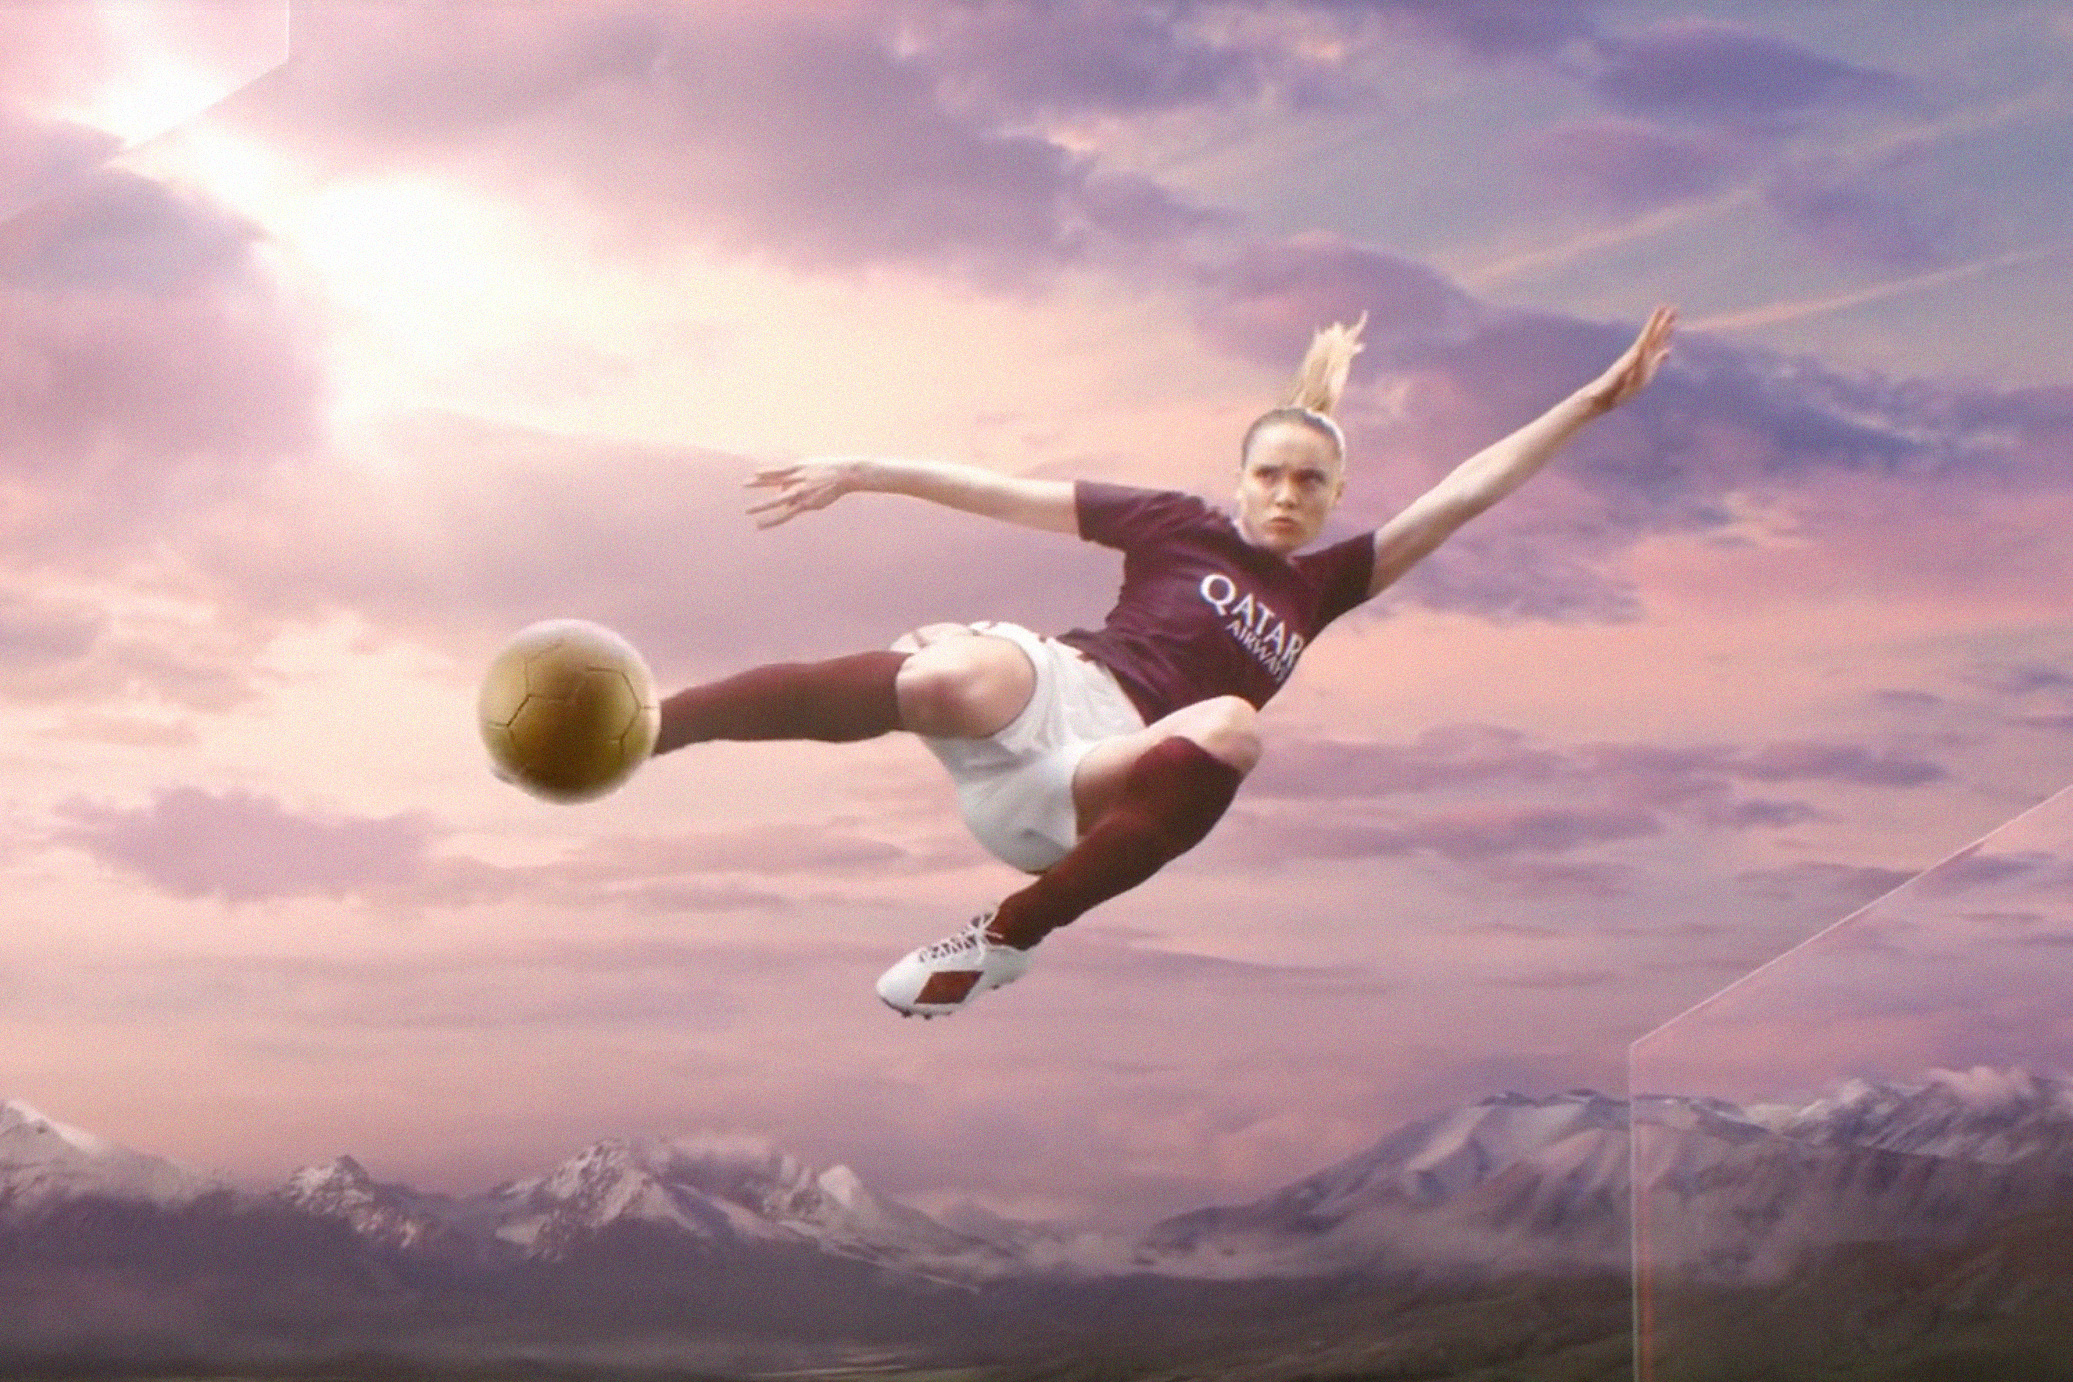 Nike, Visa and Qatar Airways among the biggest viral winners ahead of FIFA soccer tournament